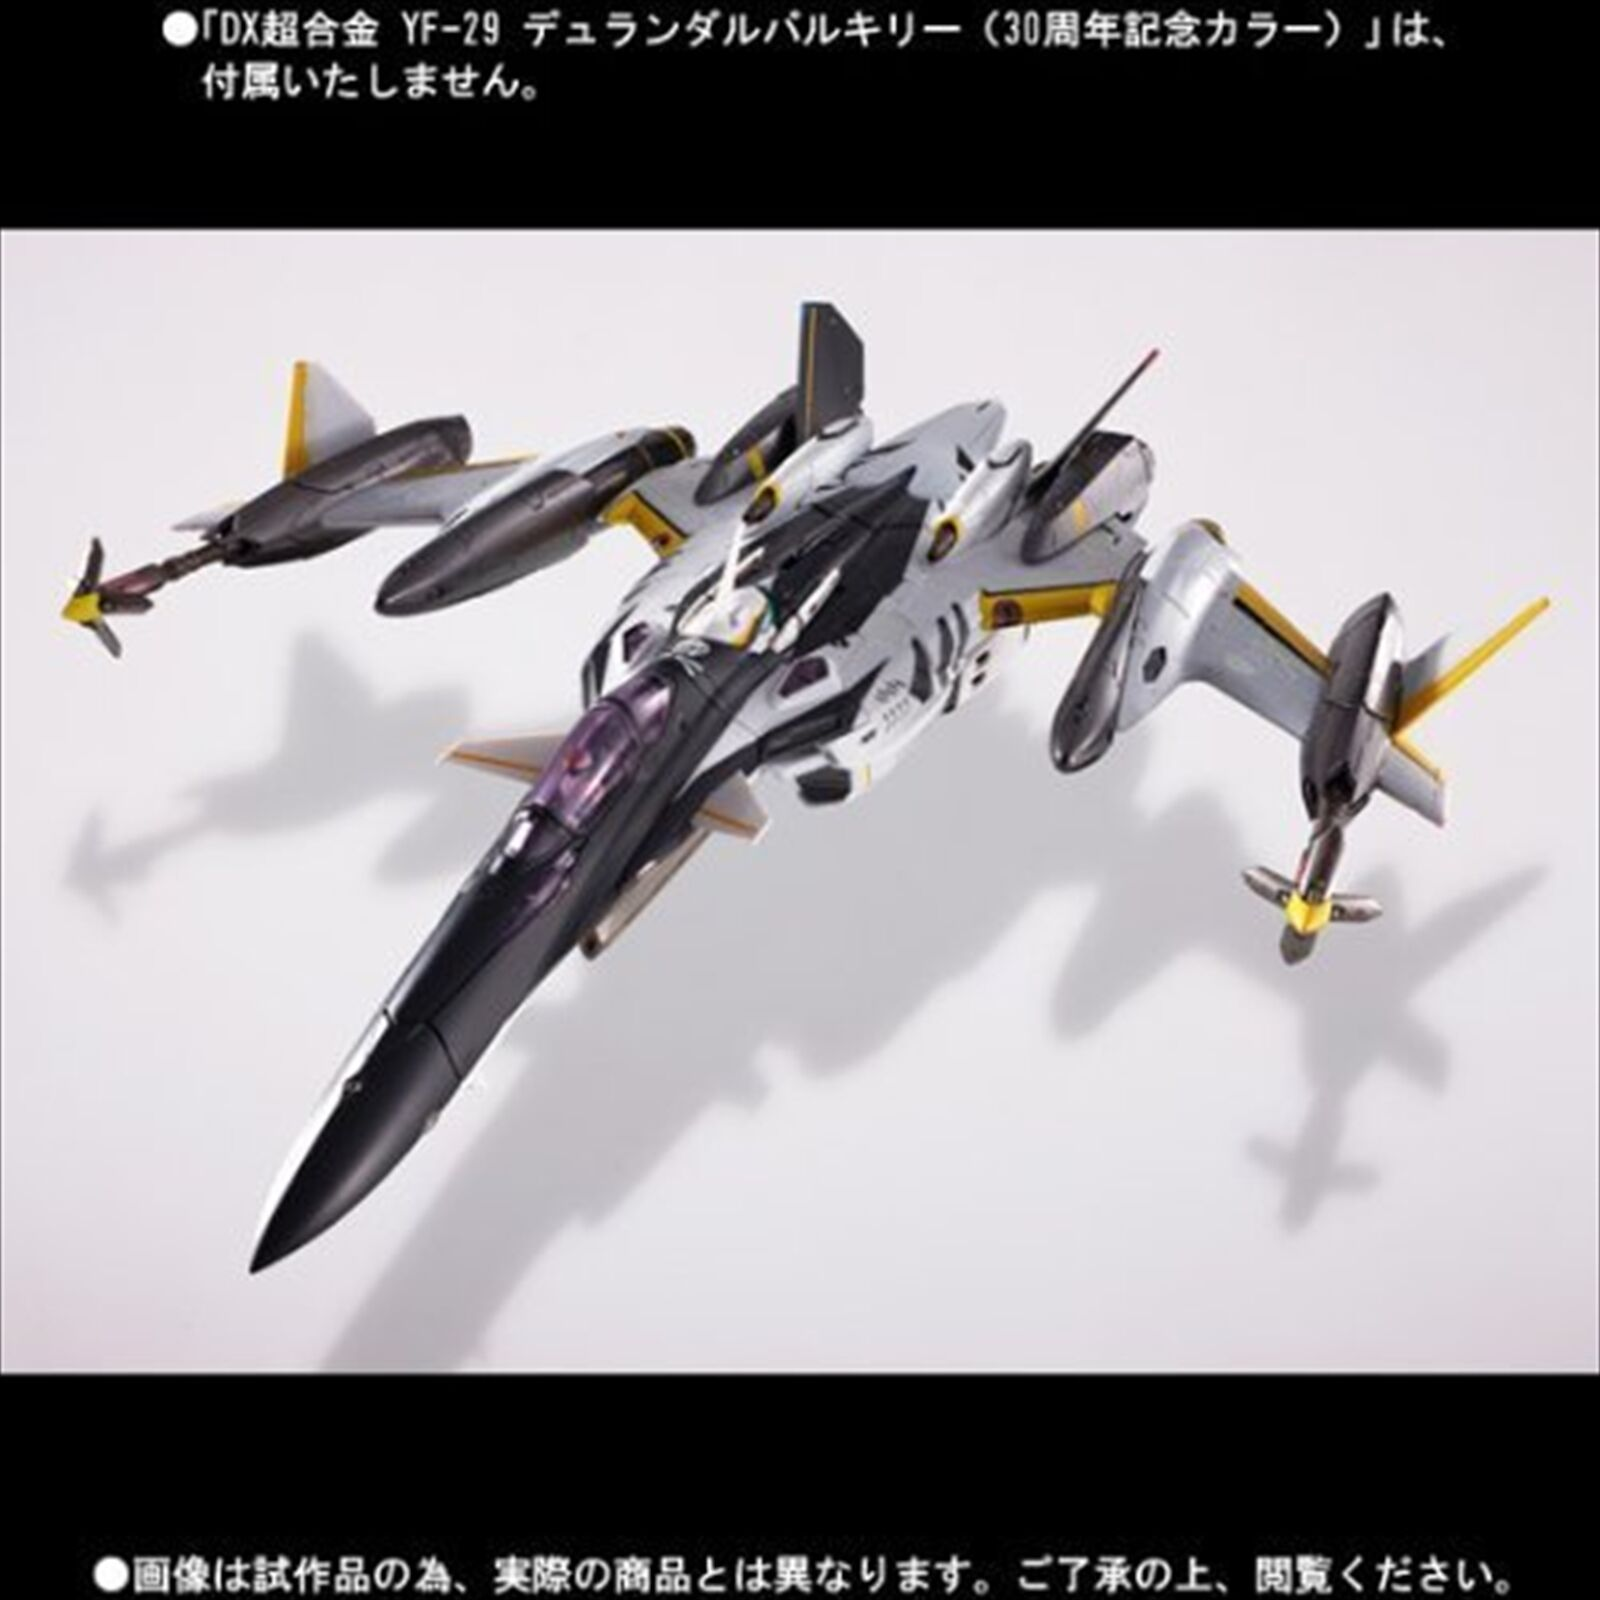 Macross F DX Chogokin YF-29 Durandal Valkyrie 30th Anniv. Farbe Super Parts